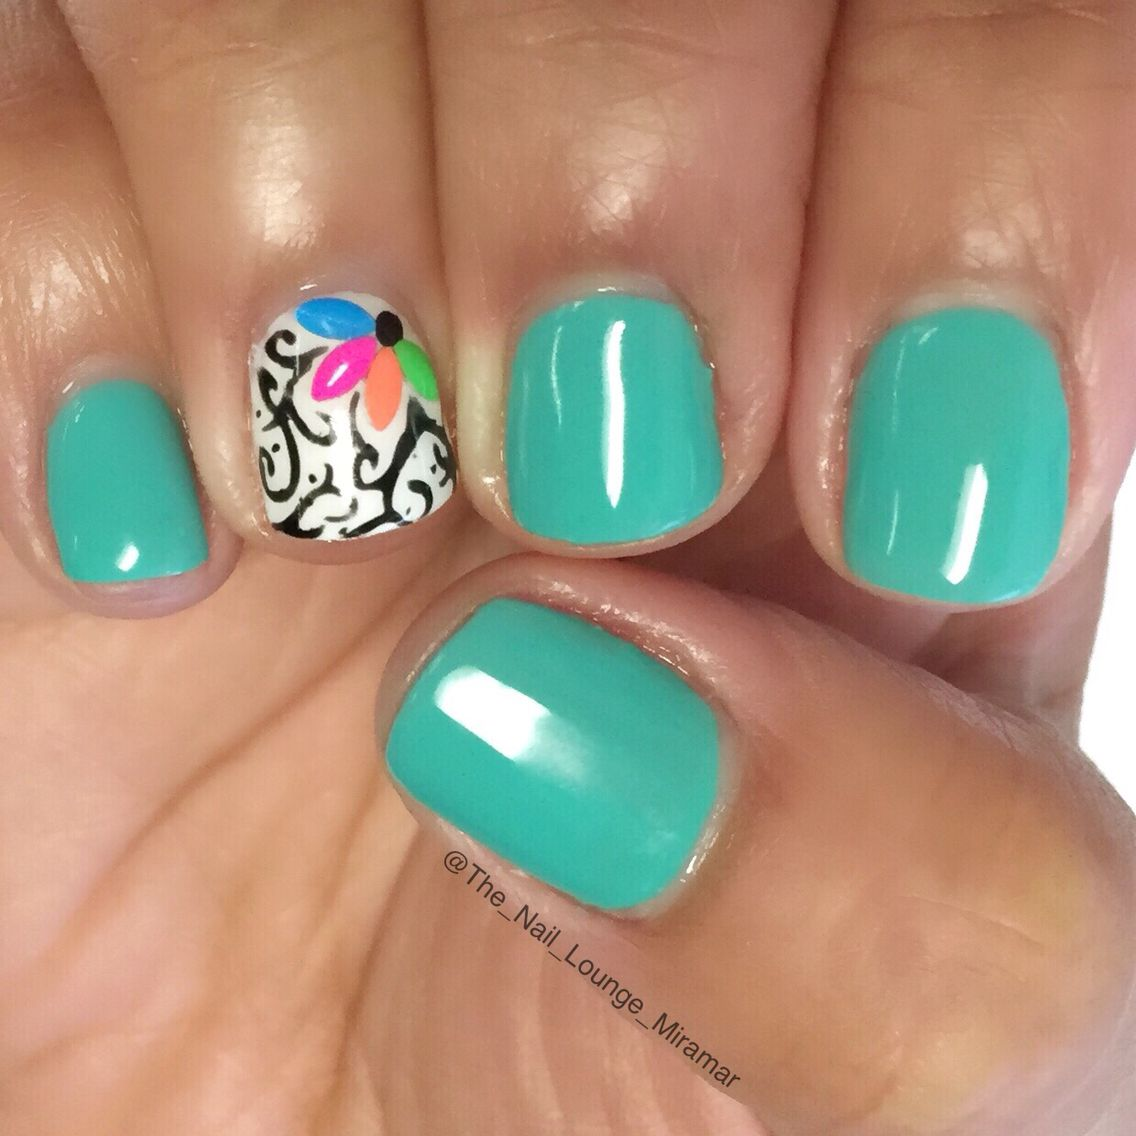 Teal flower nail art design. | Nail Art | Pinterest | Teal flowers ...